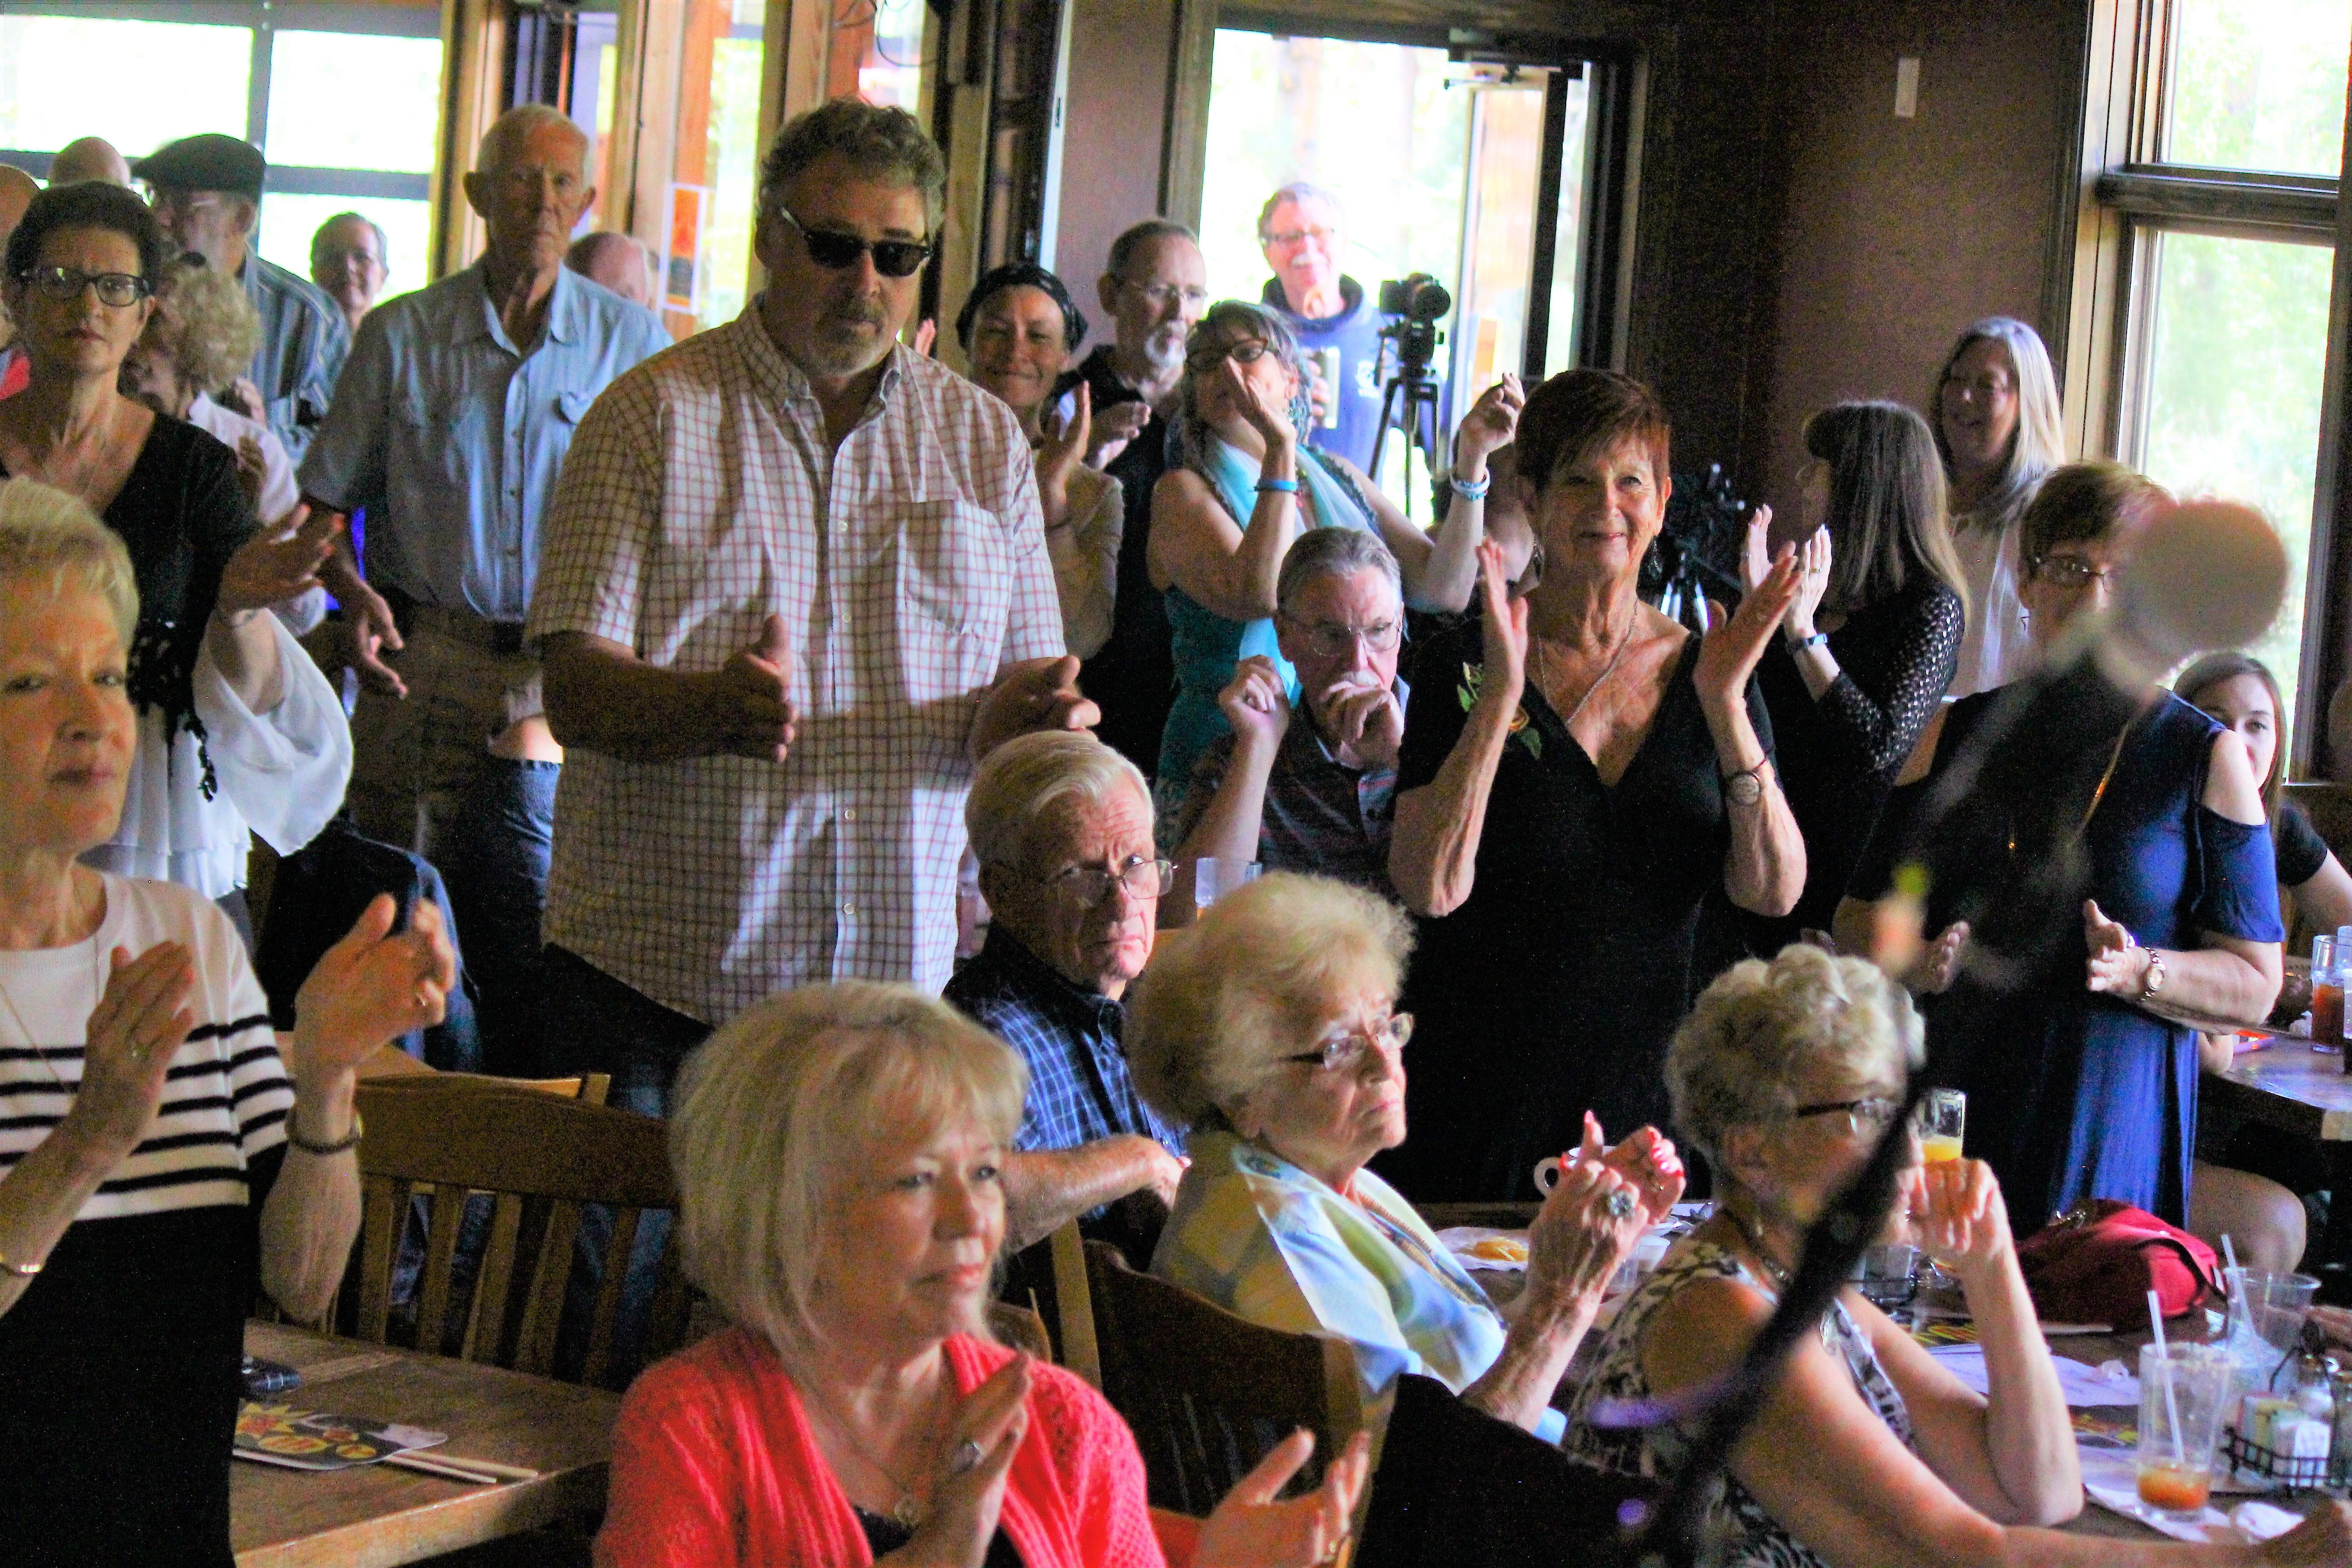 Guests at a Sacred Grounds enjoy the sounds of jamie & aka during a Sunday Gospel Brunch.